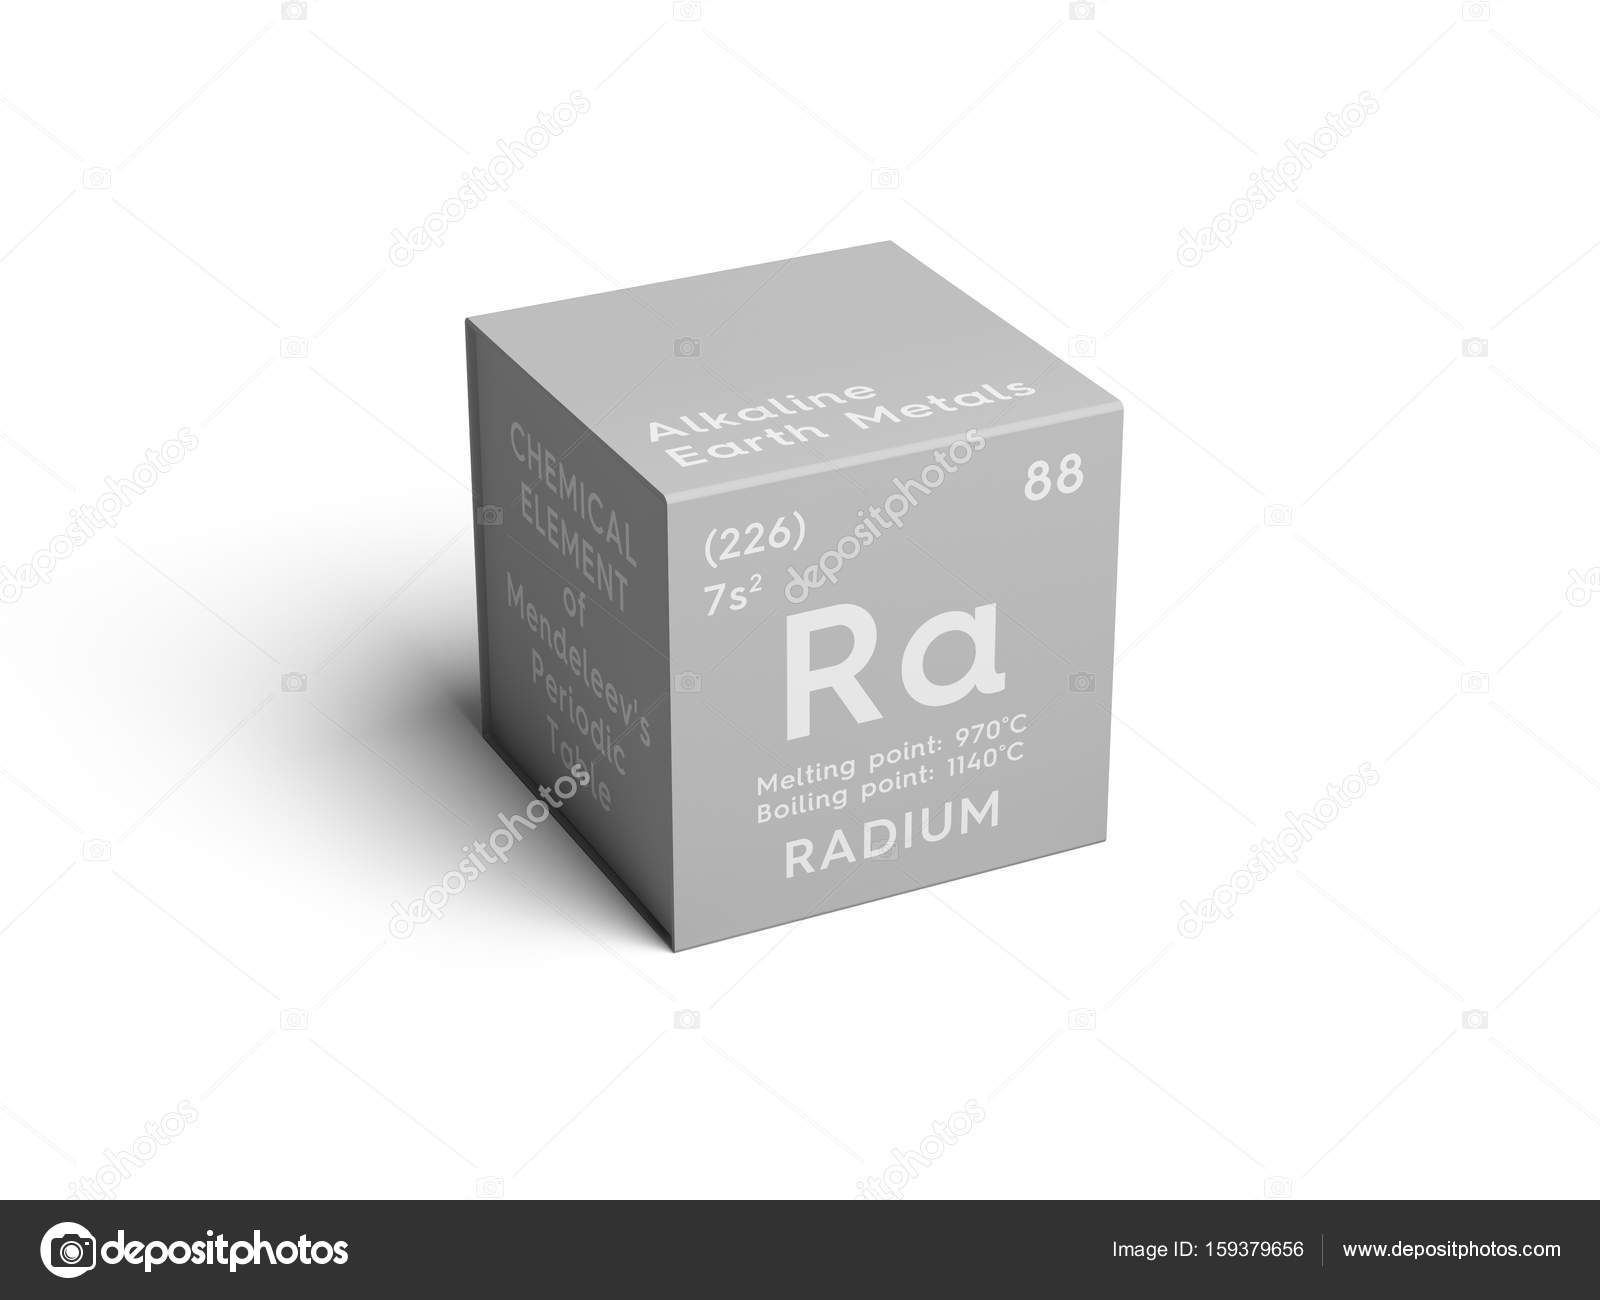 Radium alkaline earth metals chemical element of mendeleevs radium alkaline earth metals chemical element of mendeleevs periodic table radium in square cube creative concept photo by sanches812 gamestrikefo Images